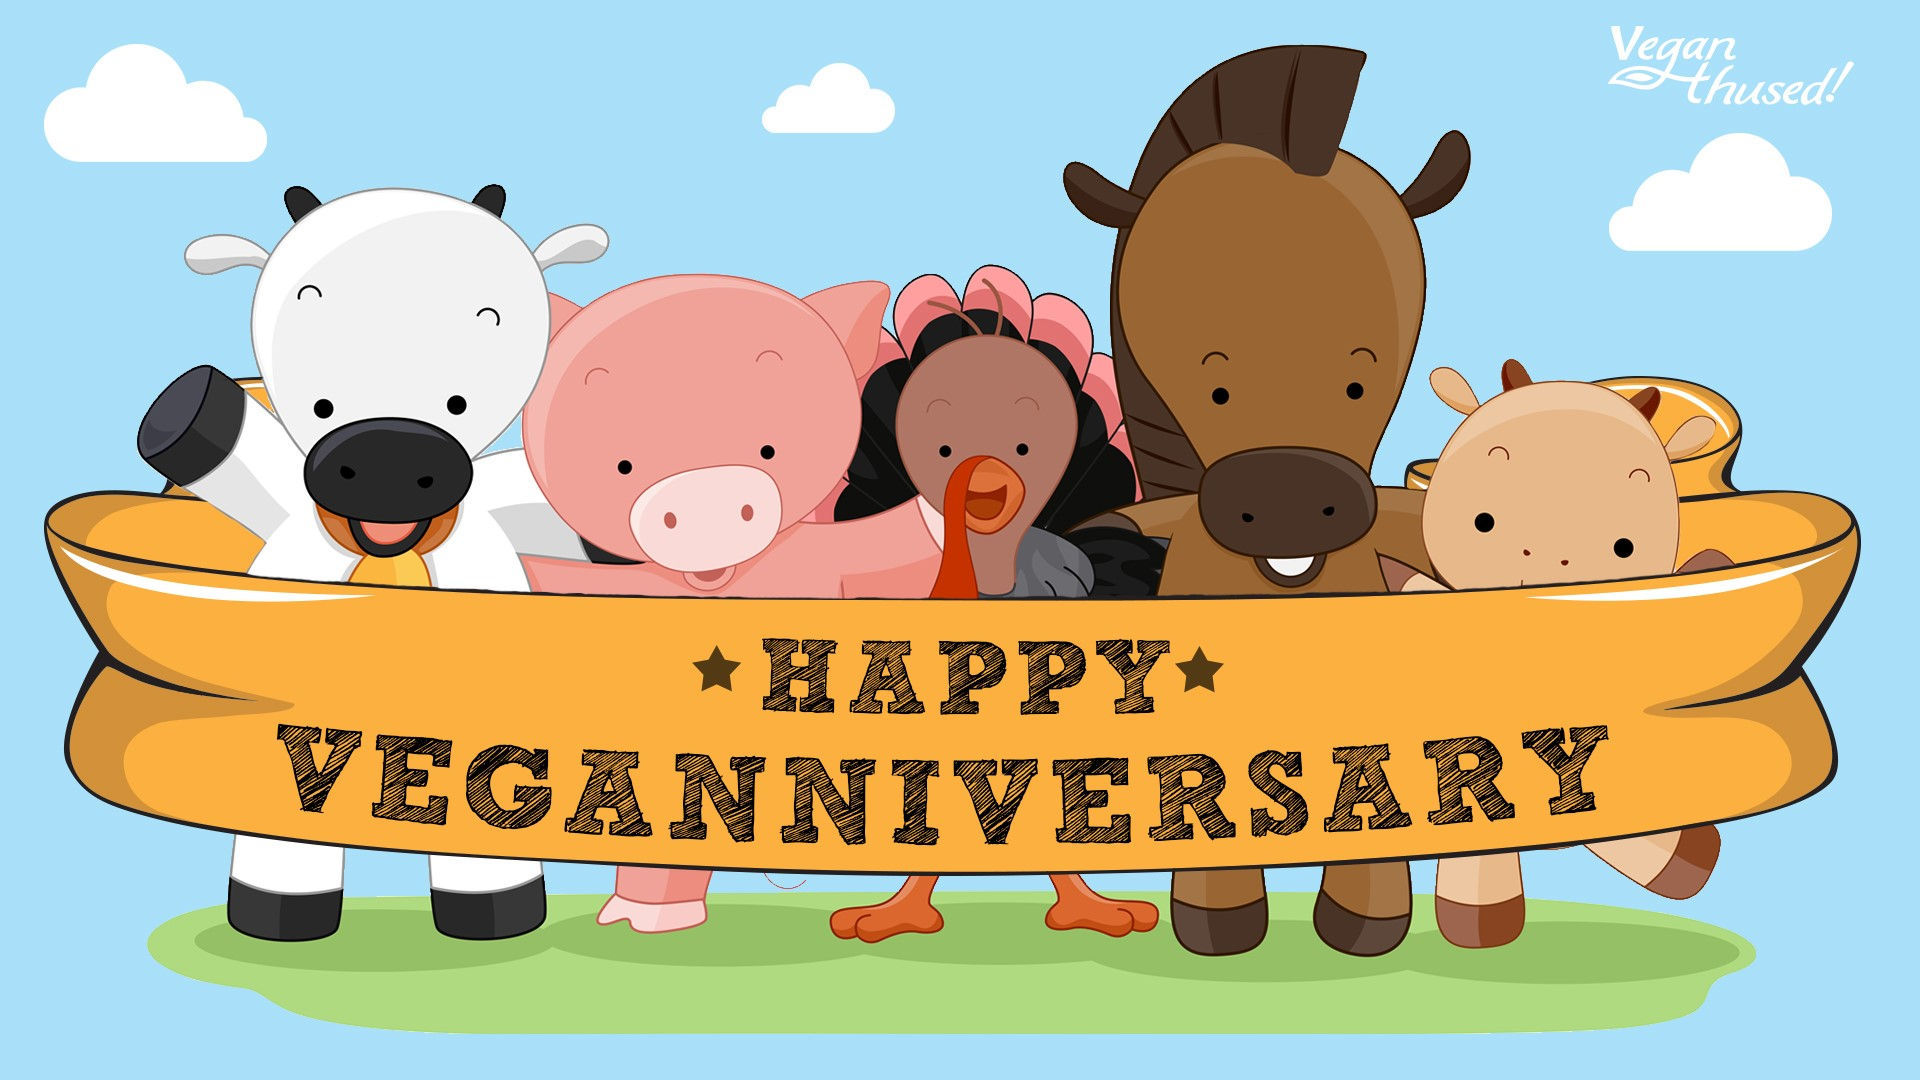 Happy_Veganniversary_cartoon_animals_with_logo